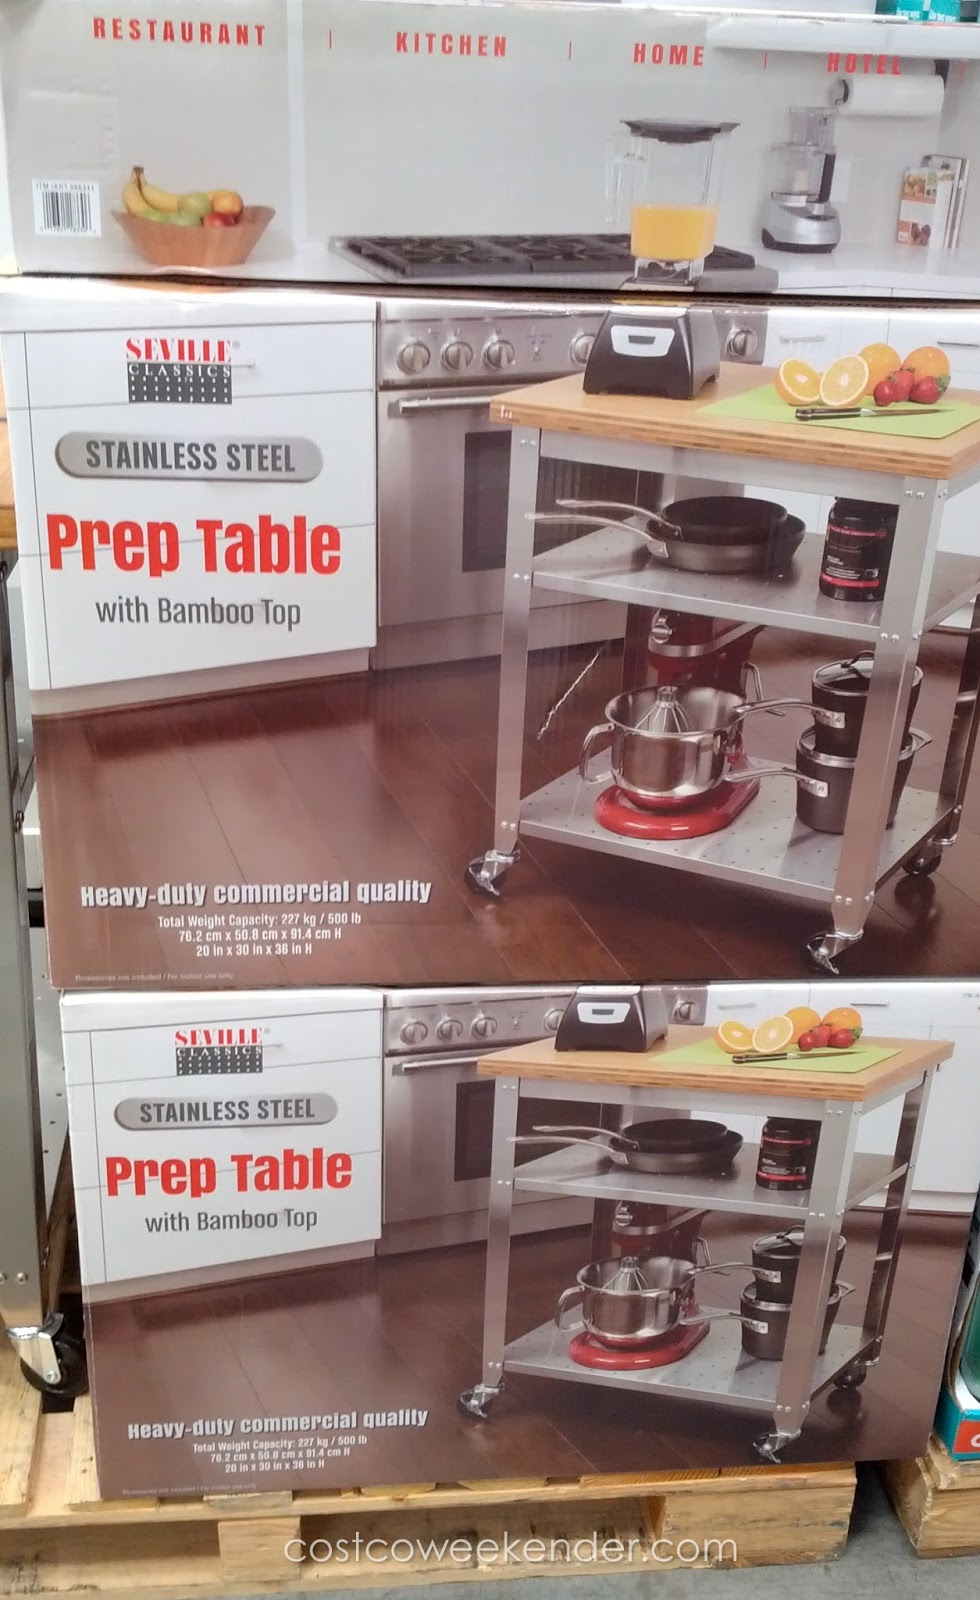 Seville Classics Stainless Steel Prep Table With Bamboo